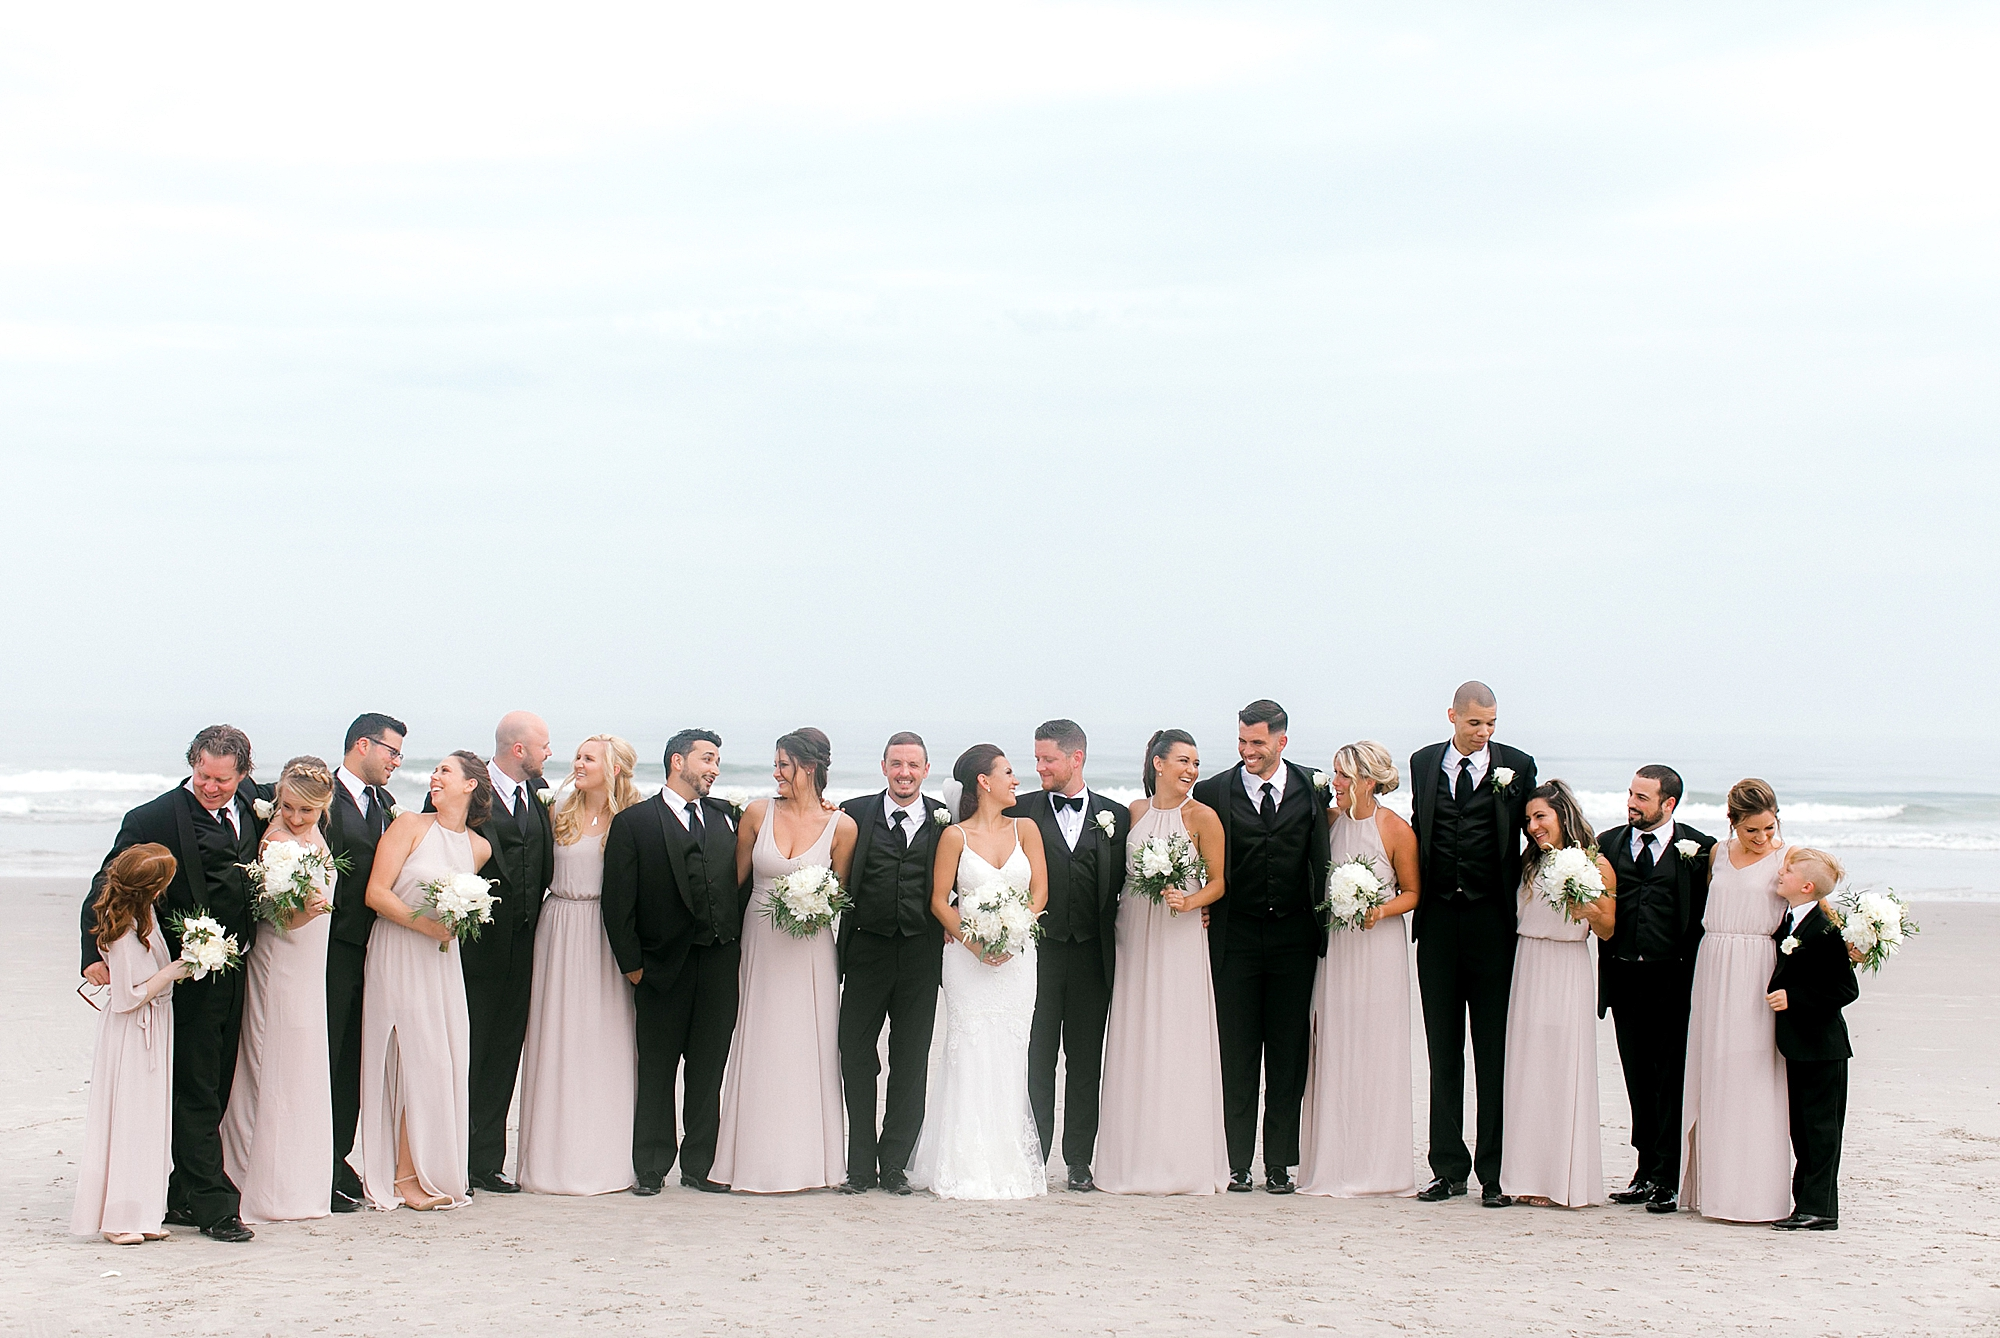 Candid and Stylish South Jersey Wedding Photography by Magdalena Studios 0037